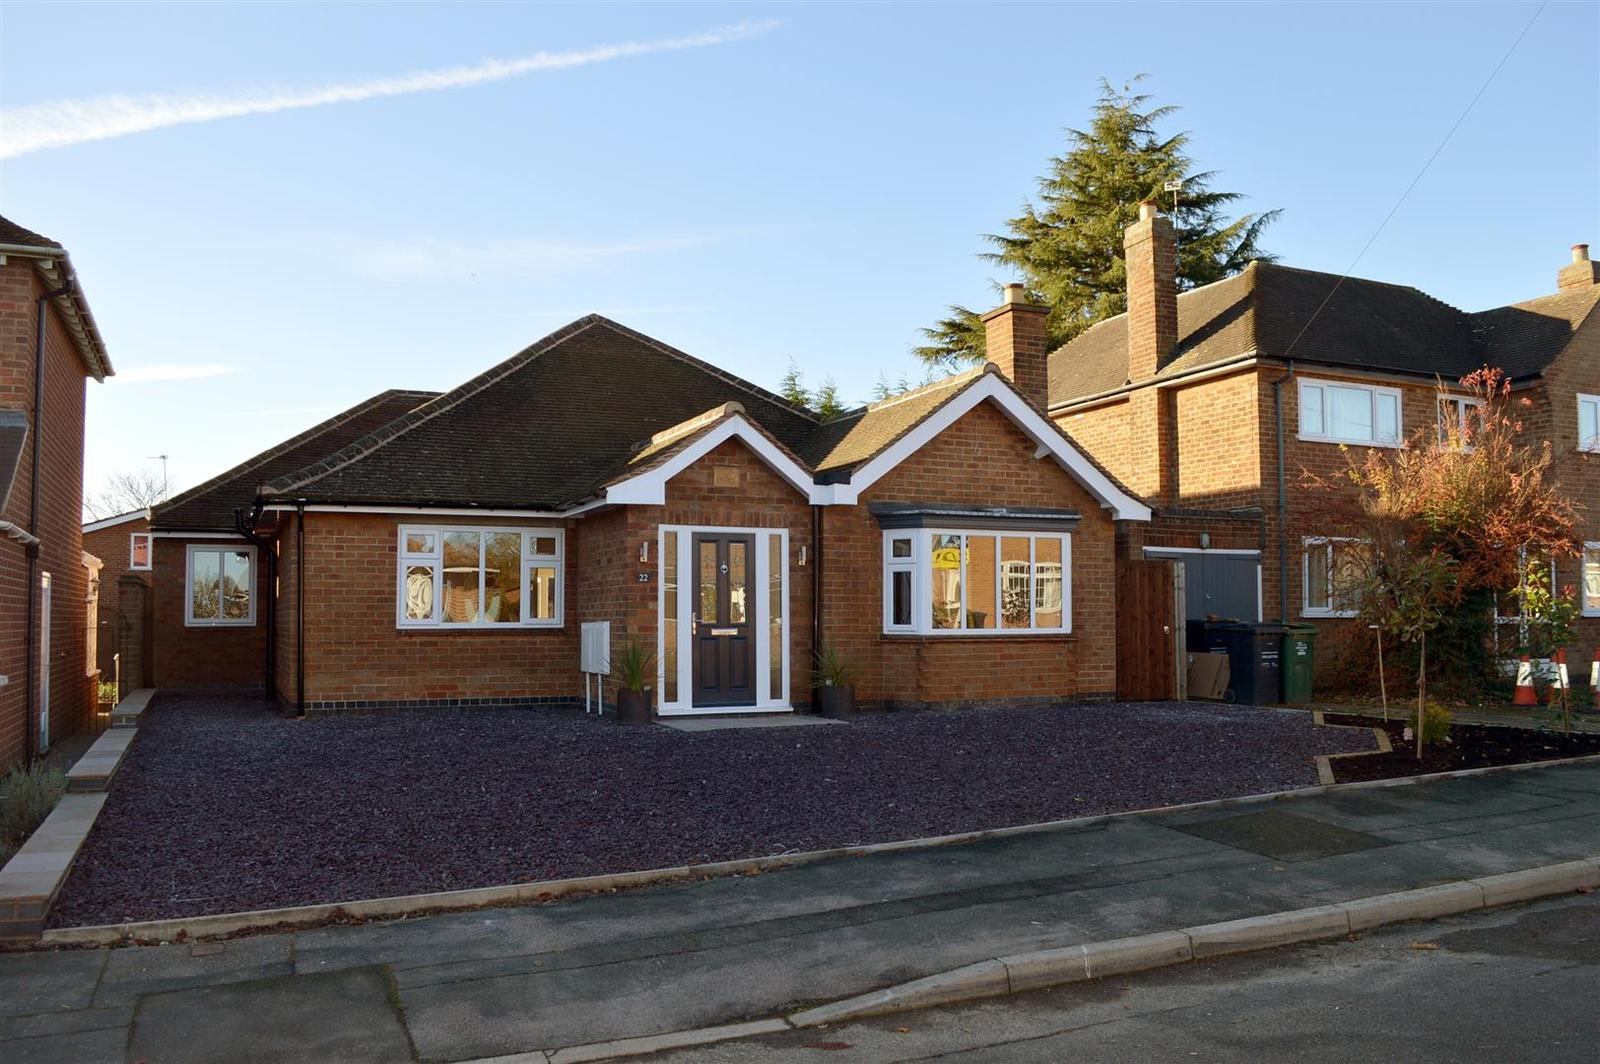 3 Bedrooms Property for sale in Shepherds Close, Loughborough